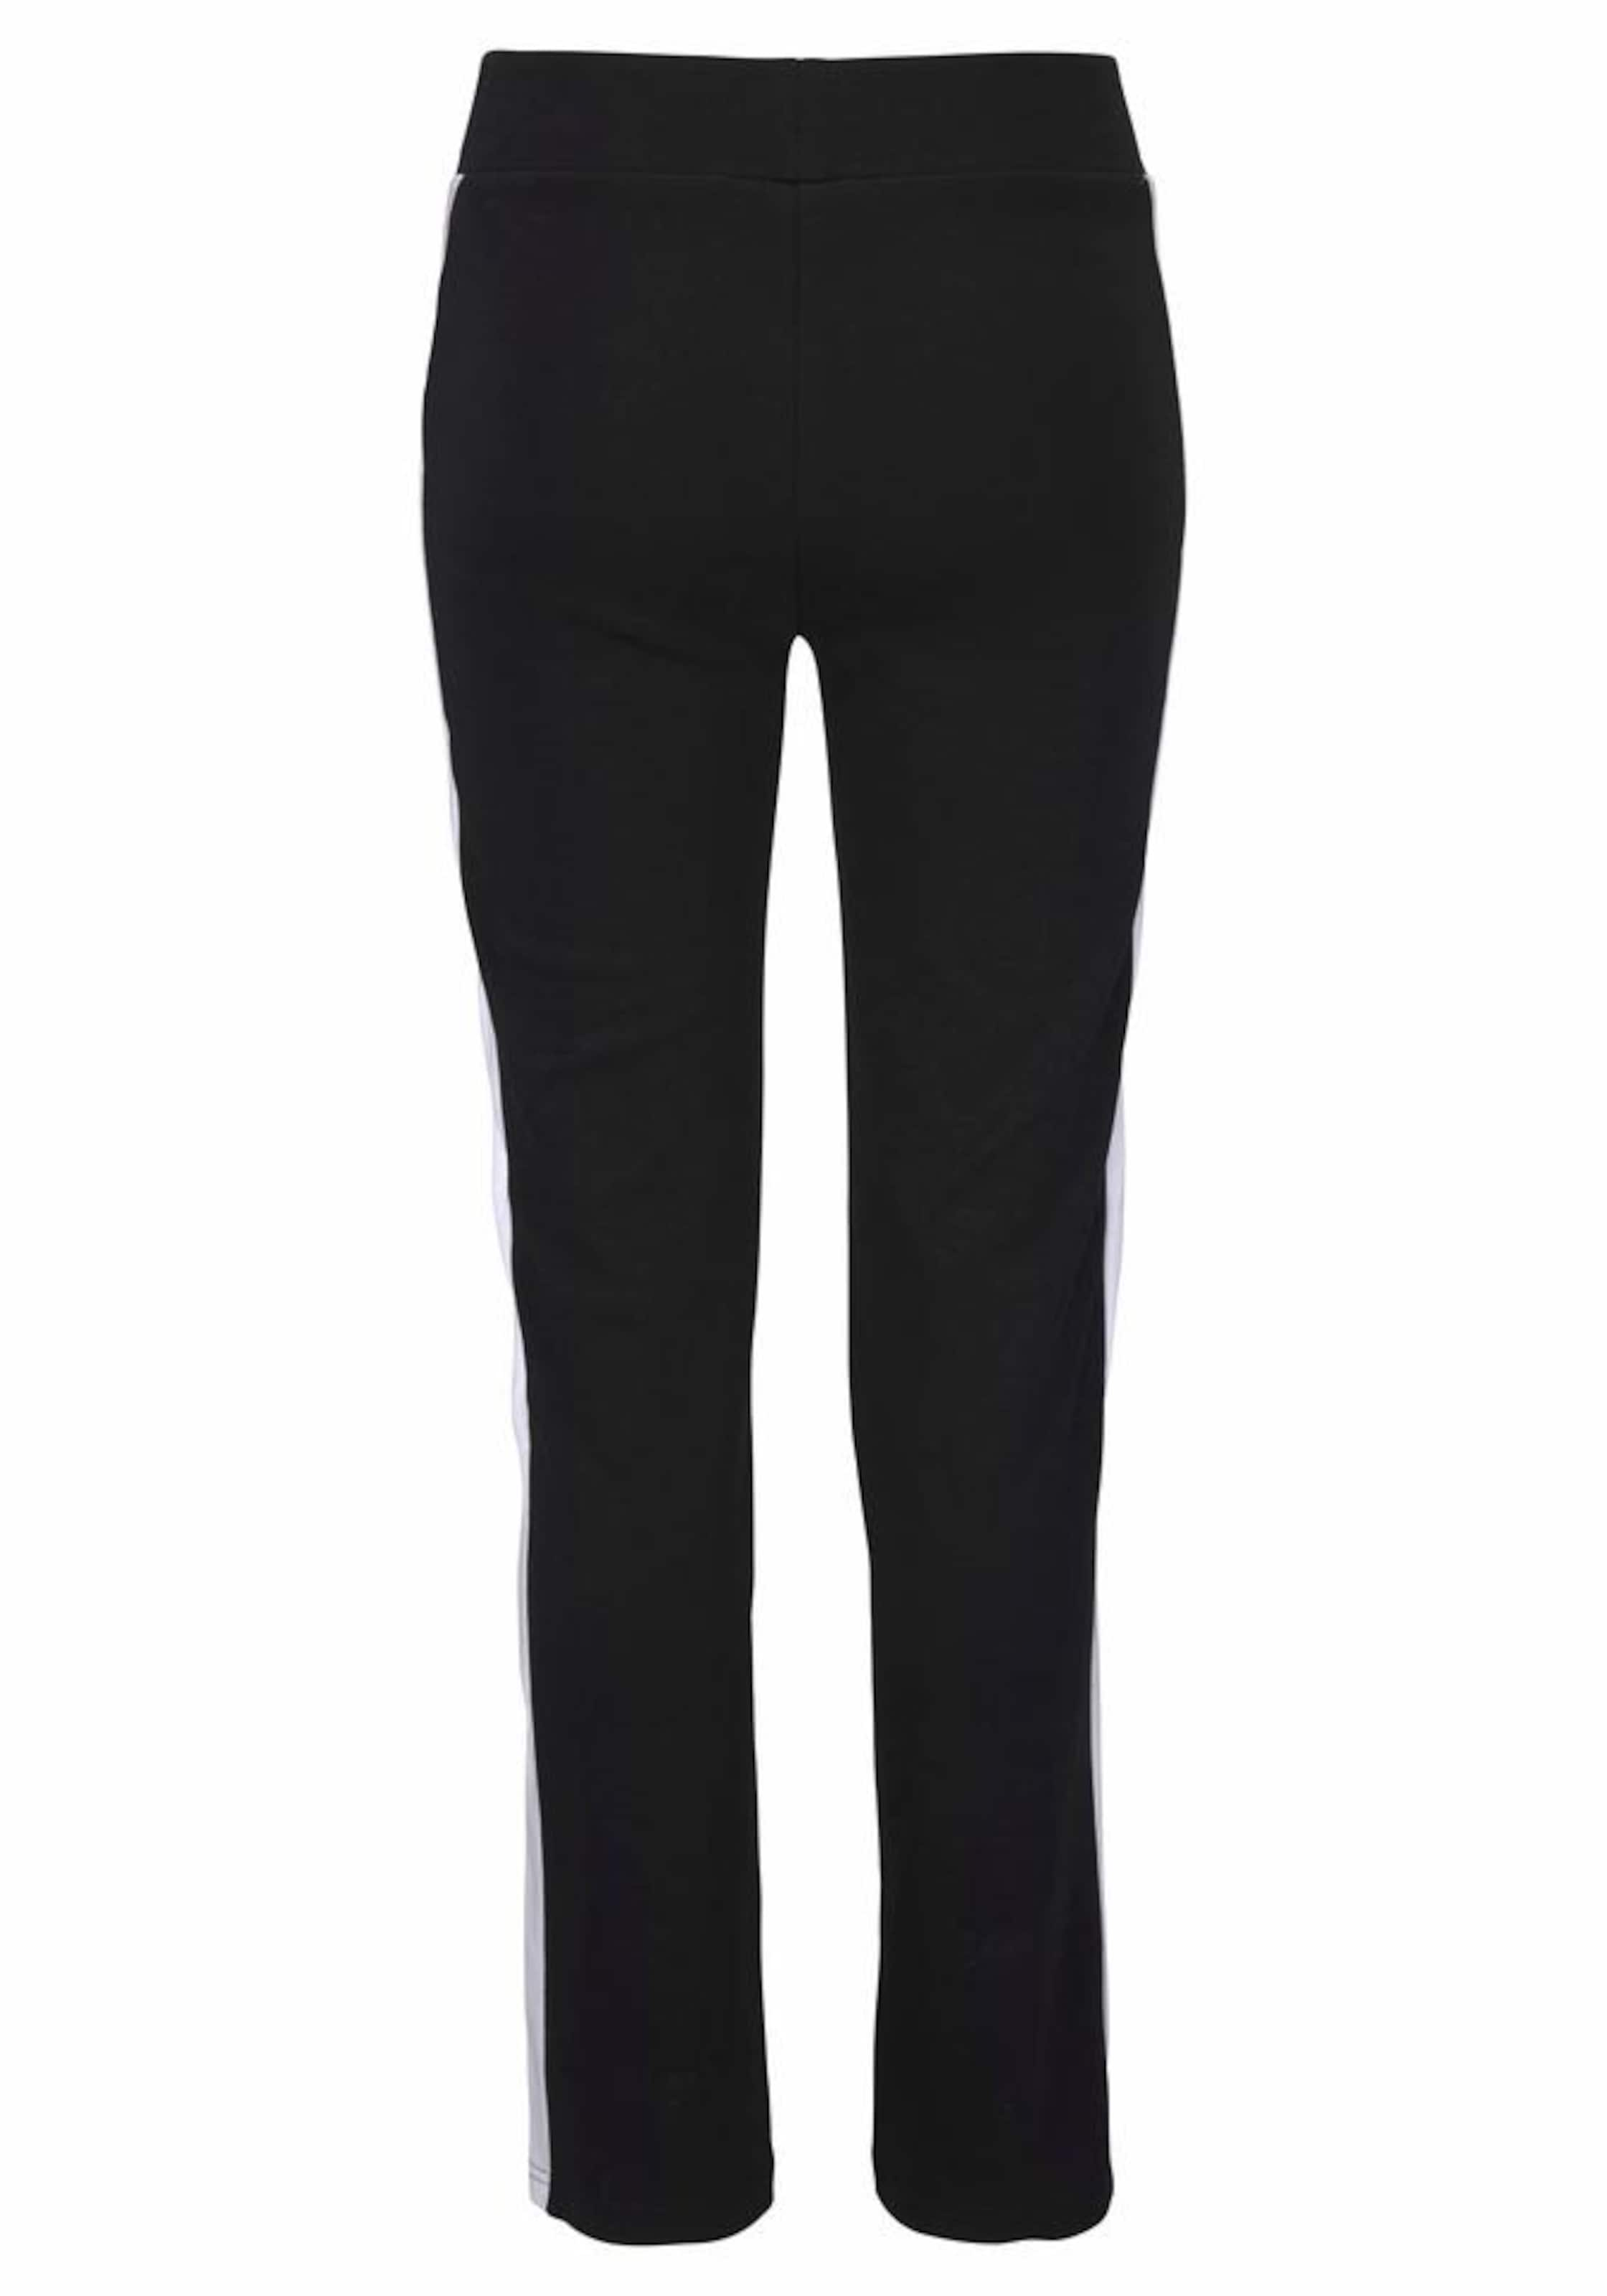 Jeans Schwarz Jeans His His In Relaxhose Relaxhose Jeans His In Schwarz sxQChrdtBo